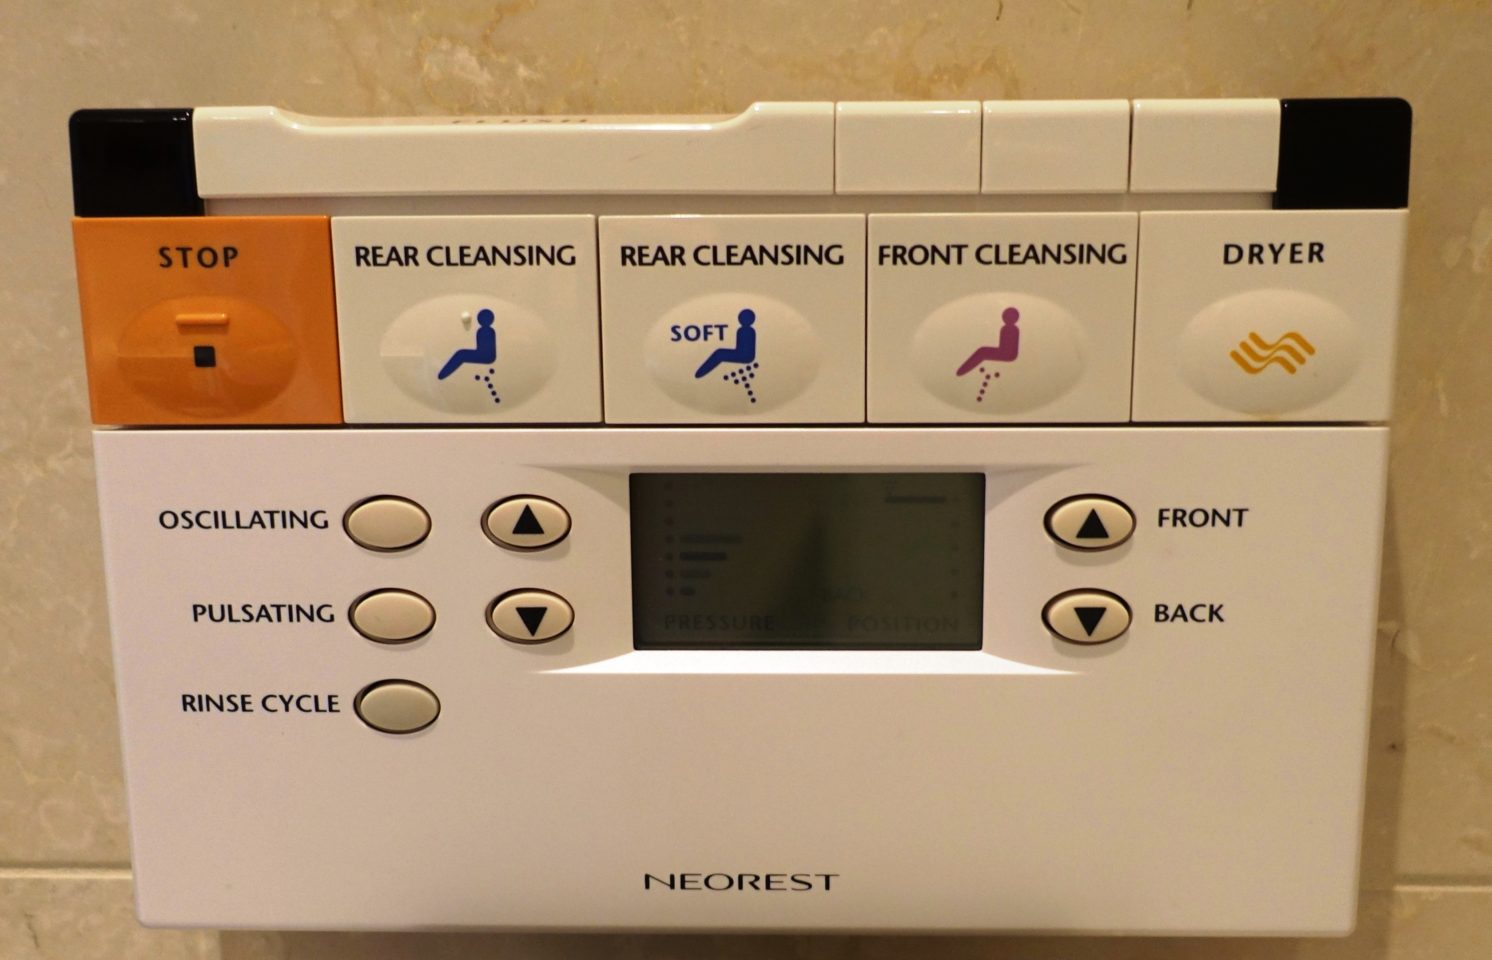 Japan Favorite Experiences ~ Wall Control for a Toto toilet offers interesting options